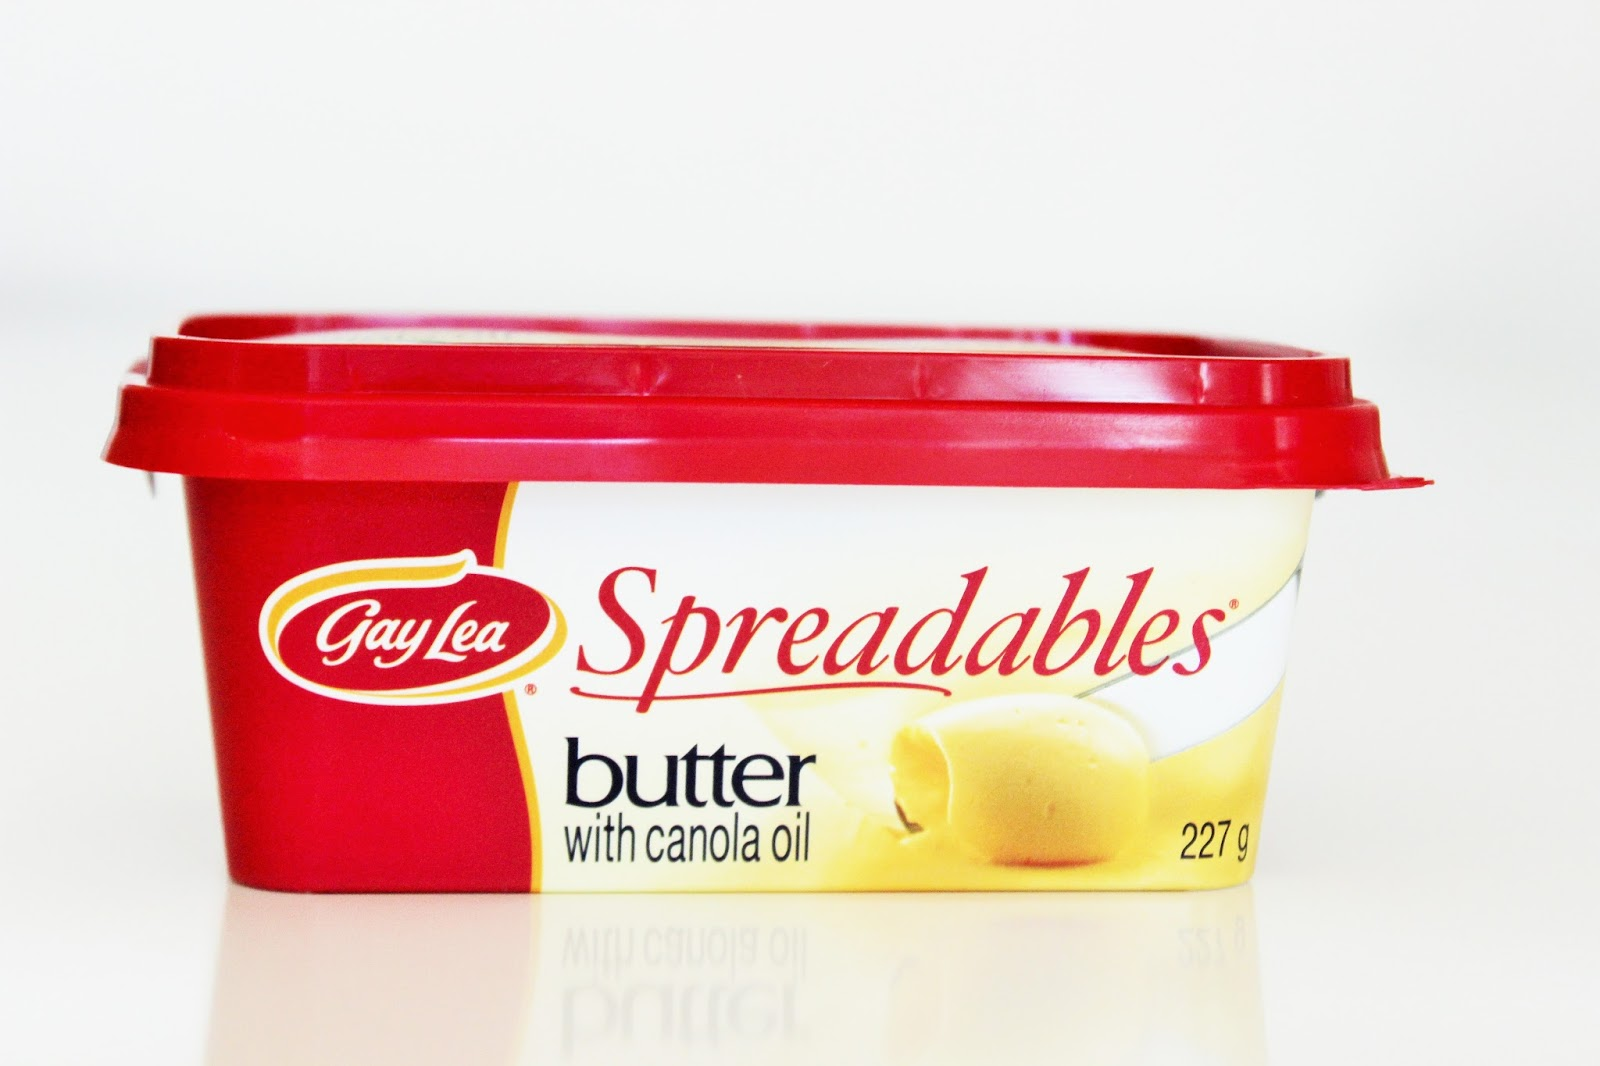 Gay Lea Butter Spreadables